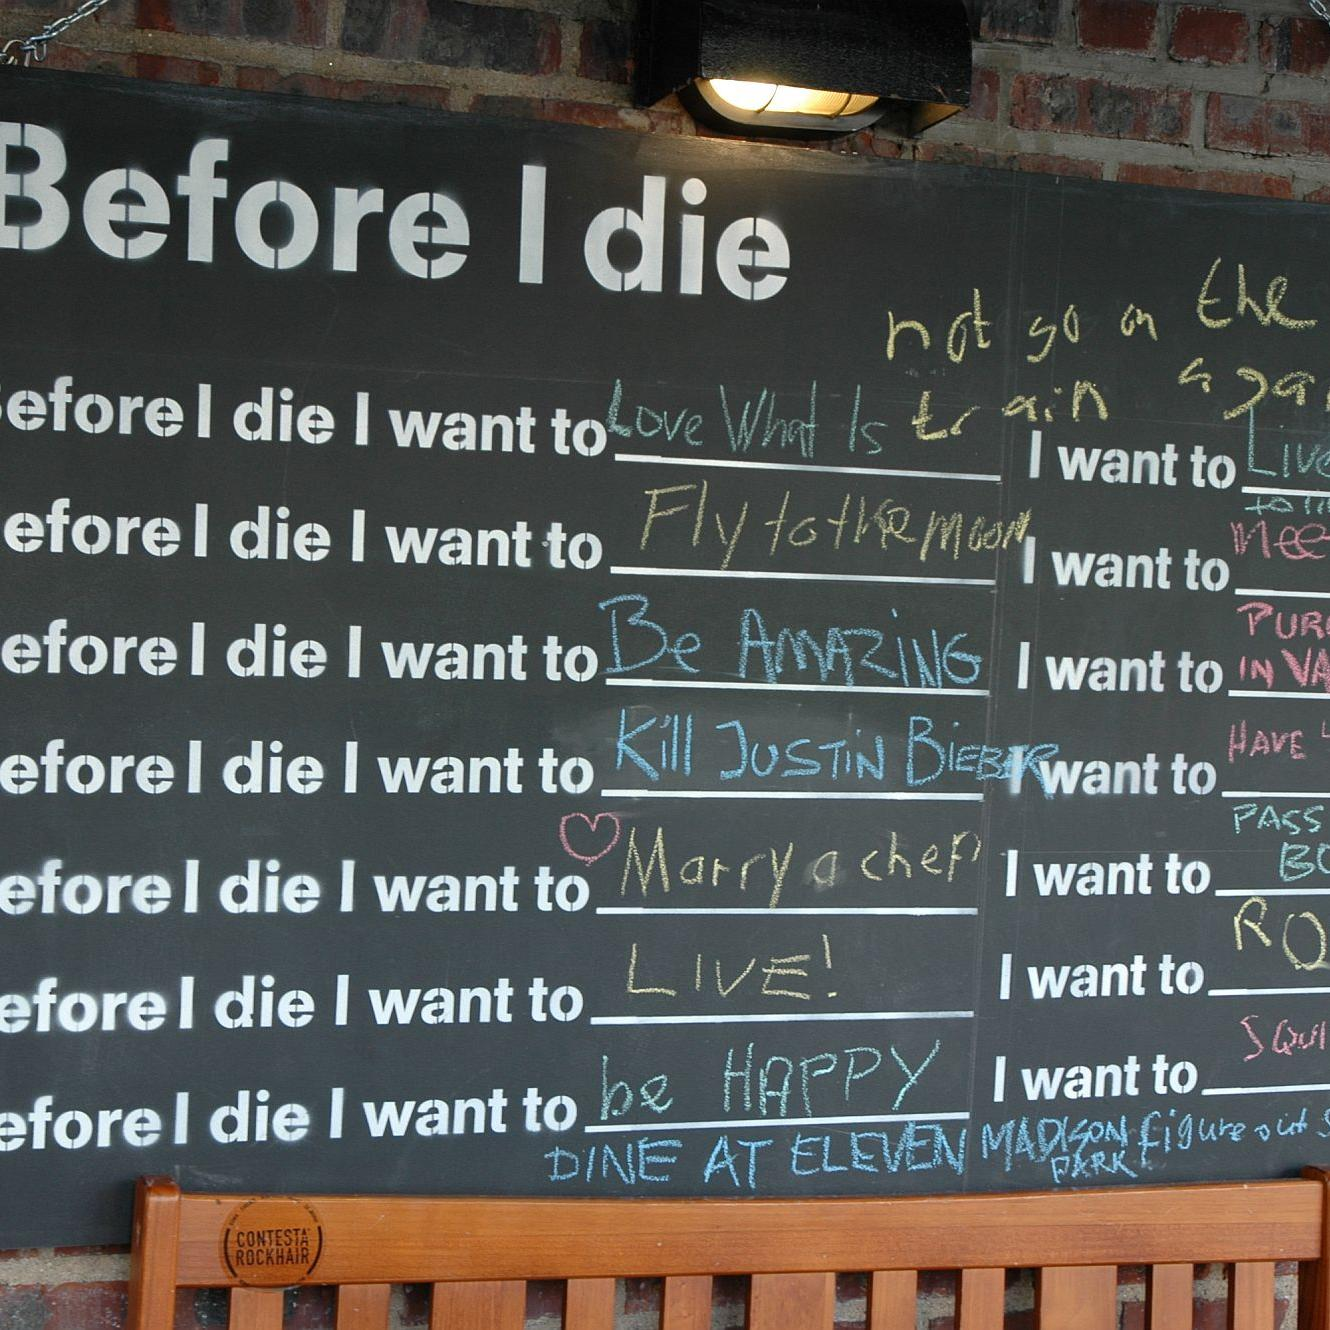 Before I die (c) Thomas Hohenschue